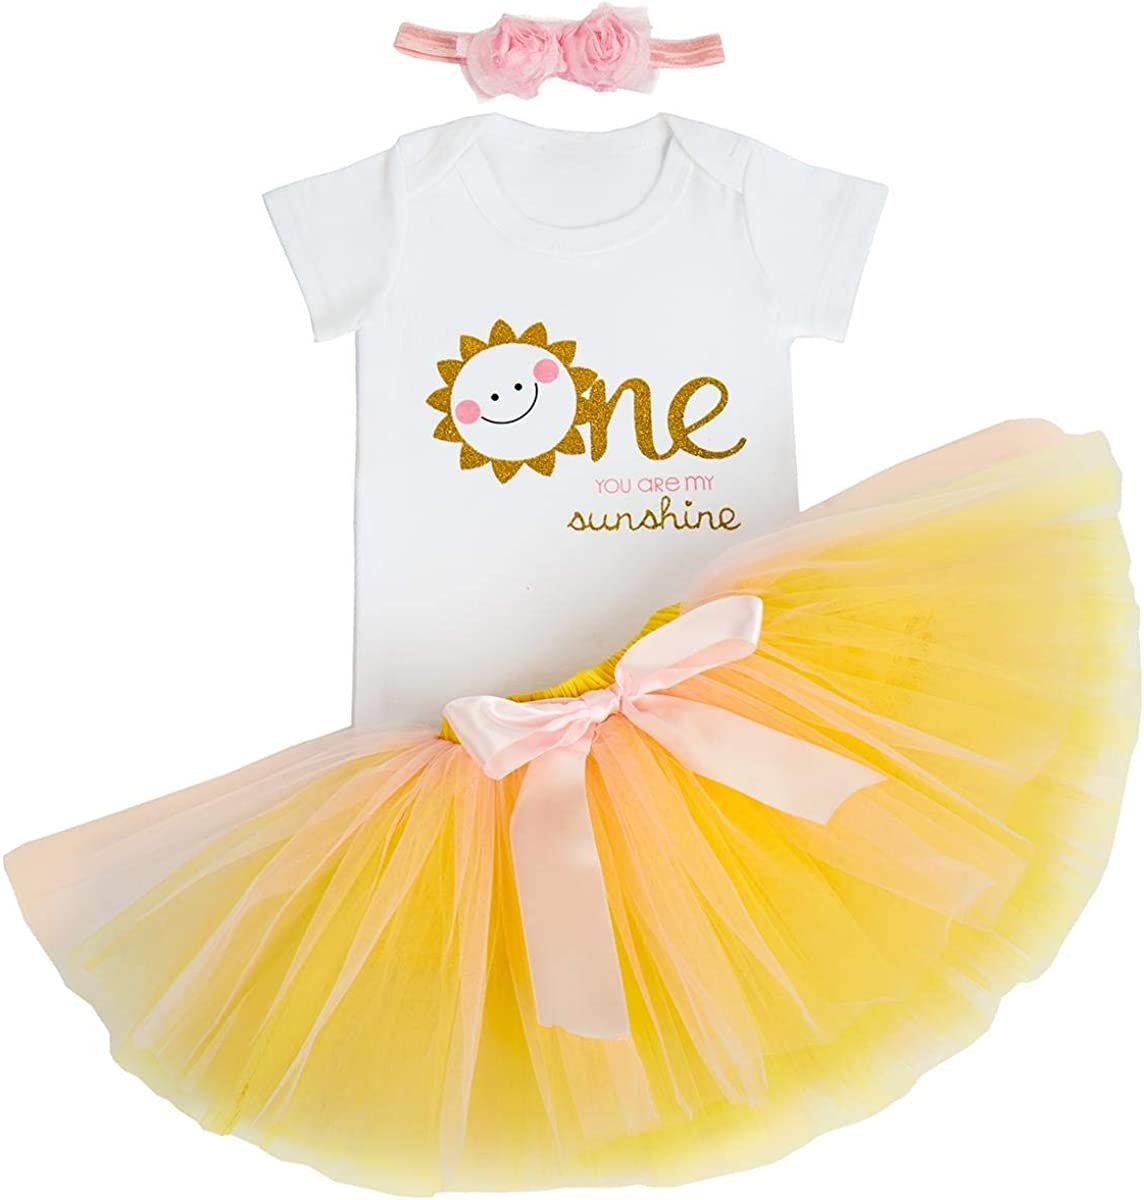 FYMNSI Toddler Kids Baby Girl 1st Birthday Cake Smash Outfit Floral One Short Sleeve Romper Fancy Tutu Skirt Bow Headband First Birthday Party Clothes Photo Props 3pcs Set